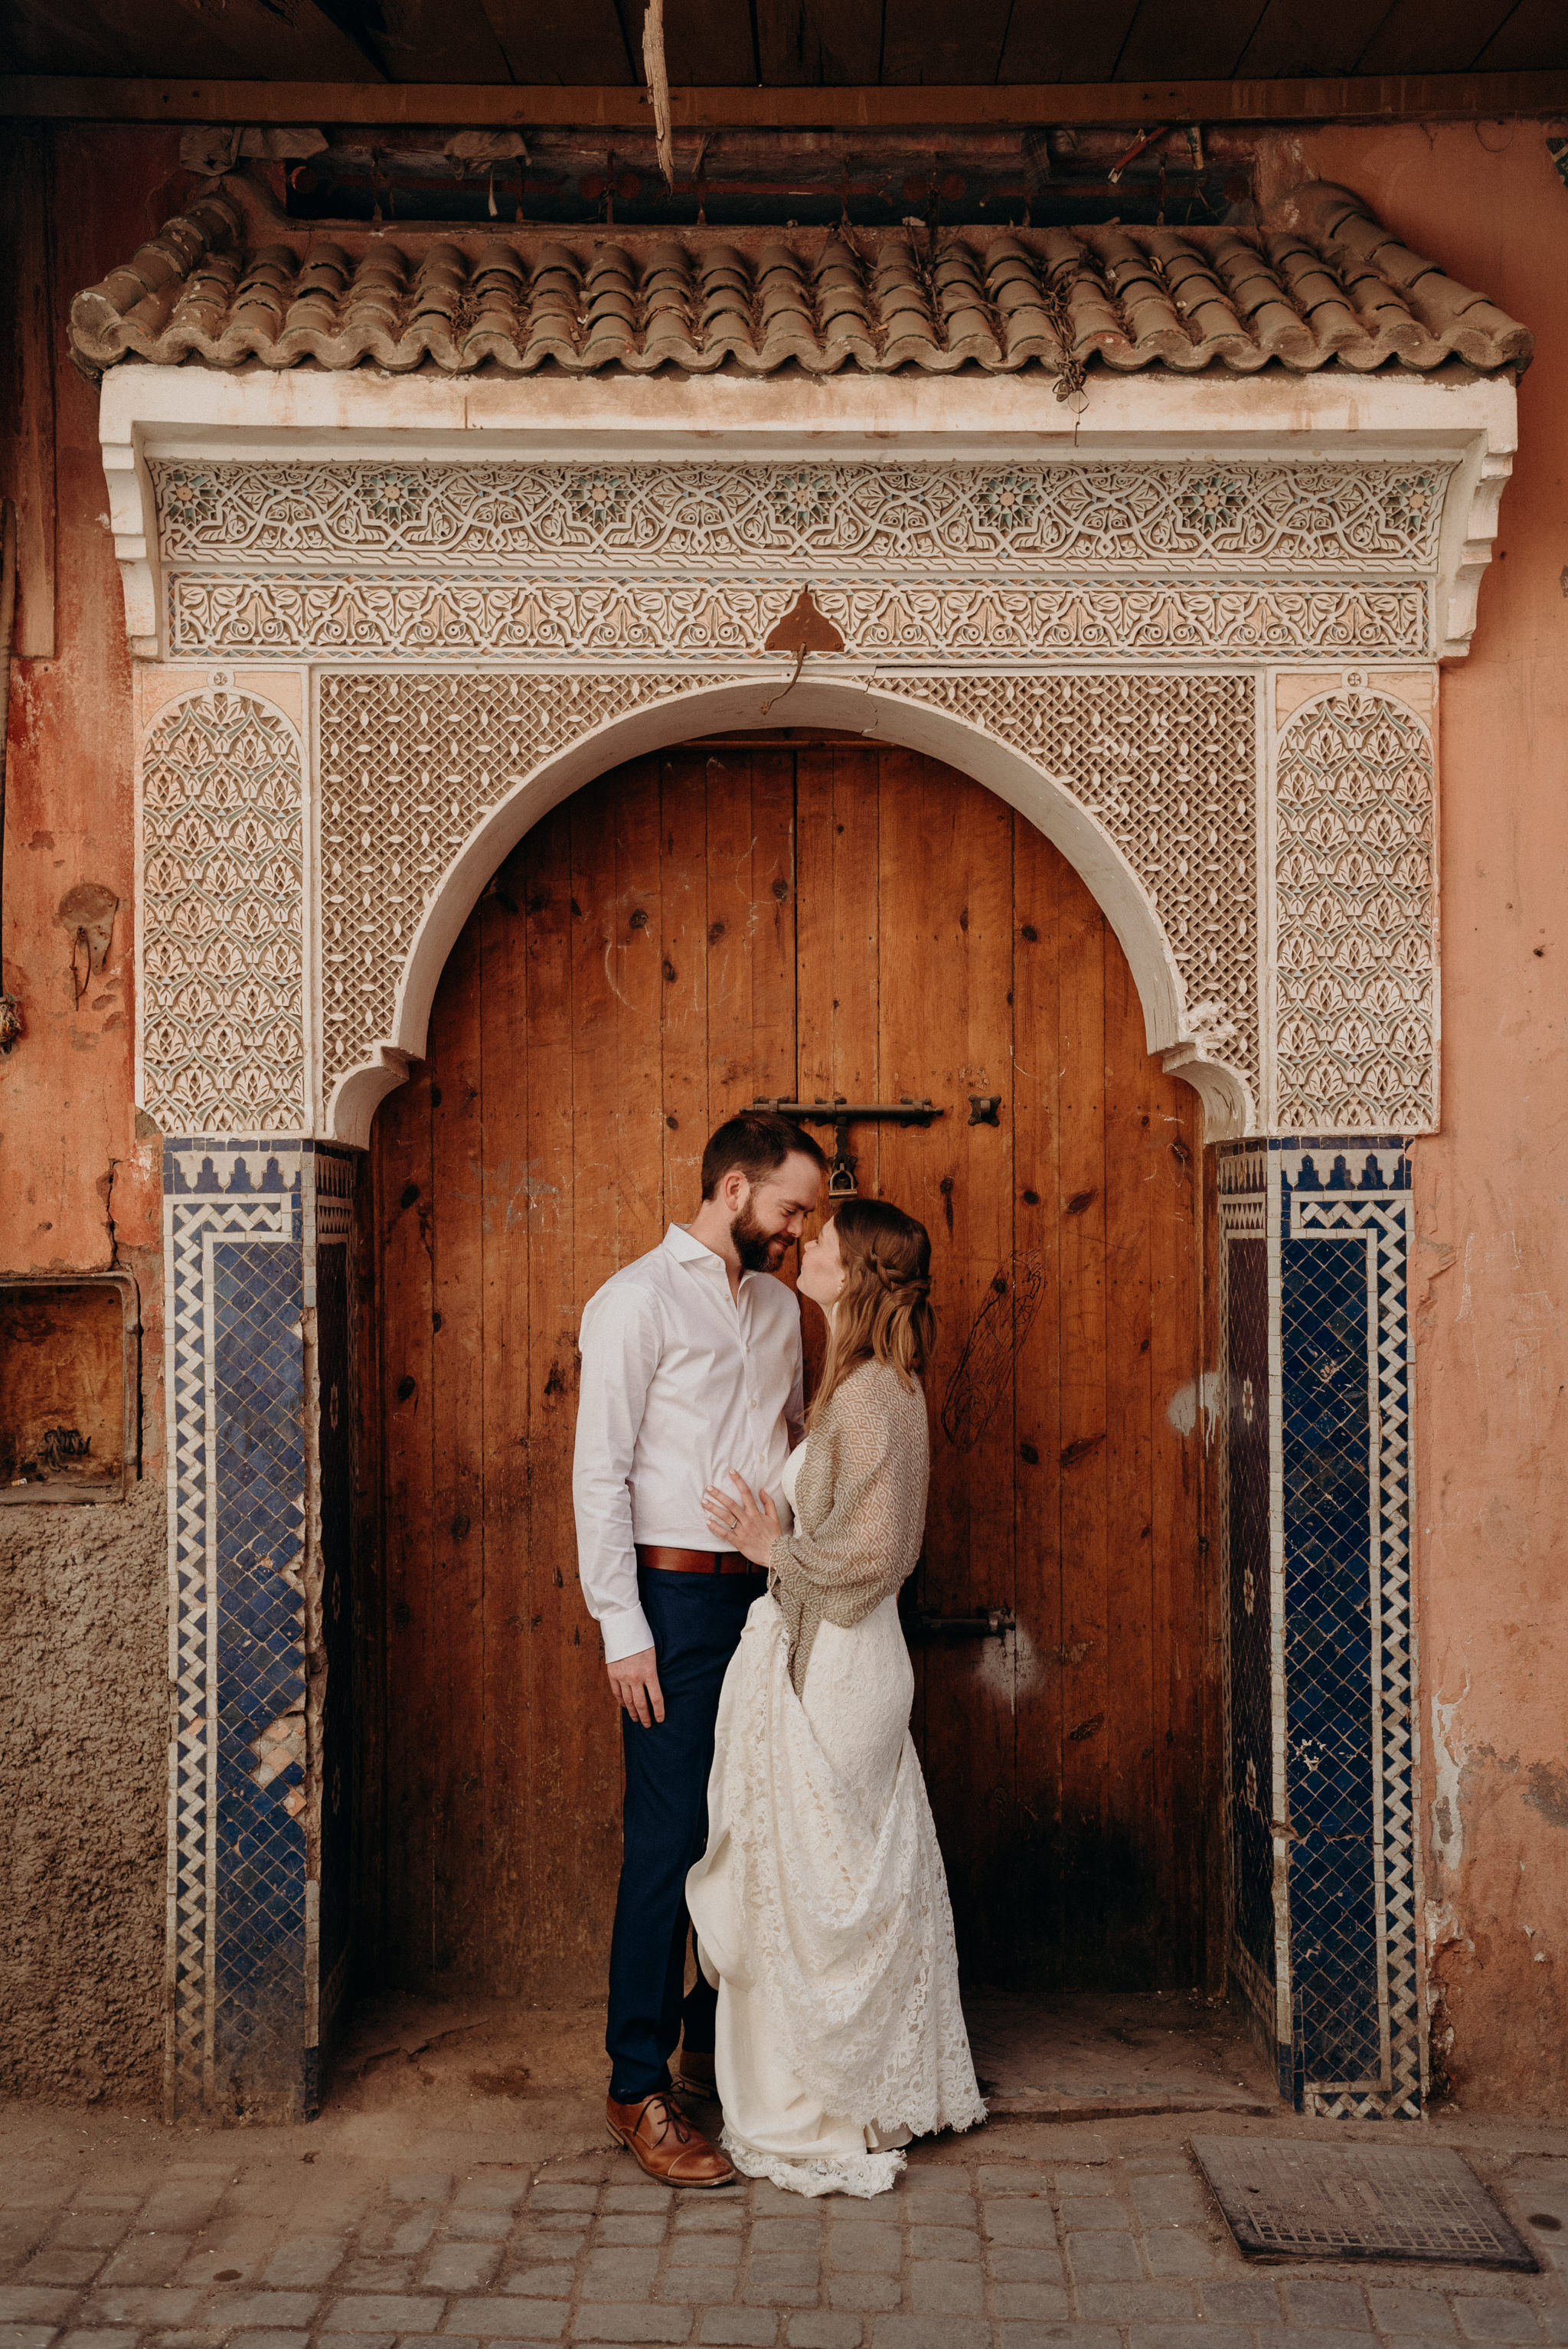 bride and groom standing in front of detailed doorway in Marrakech medina for elopement